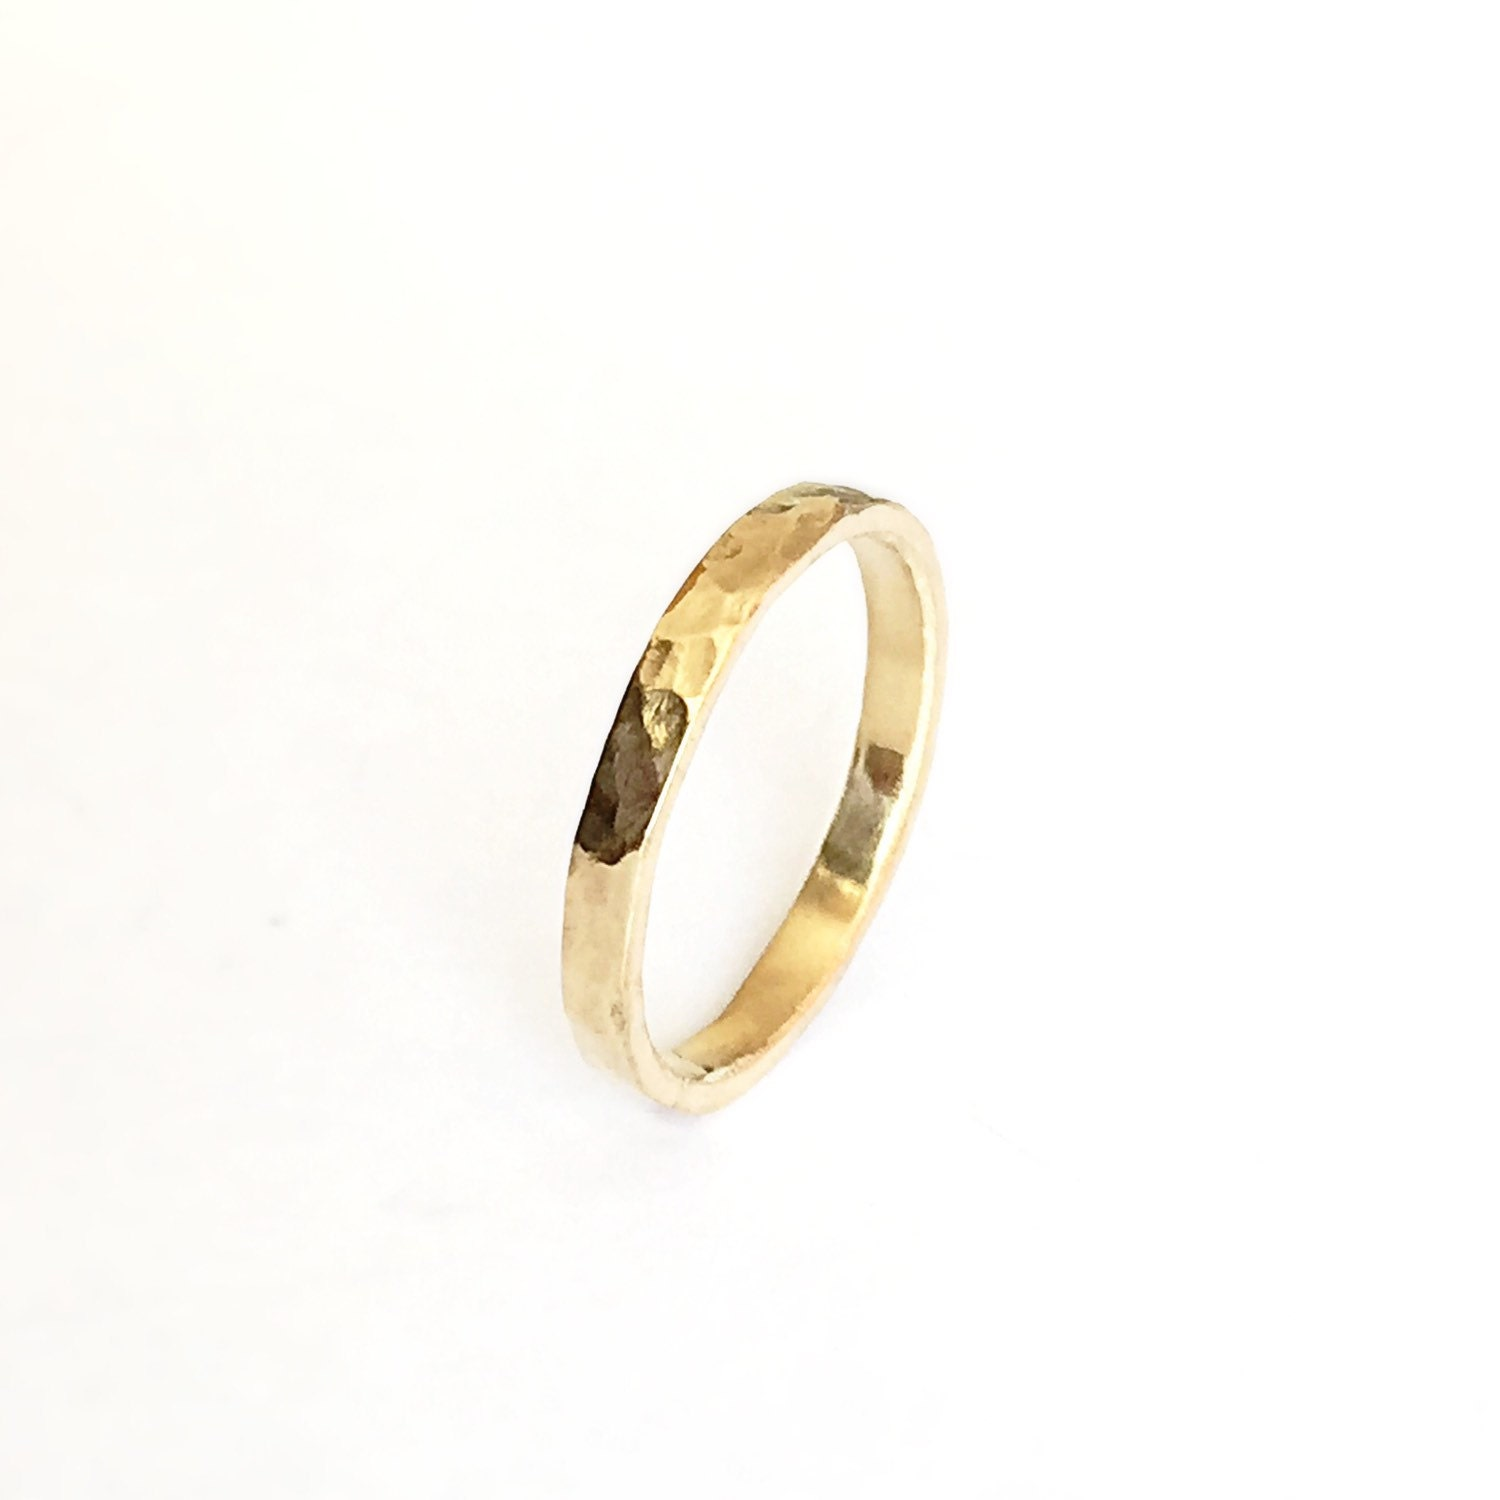 gold thin ring simple wedding band 18 carat hammered